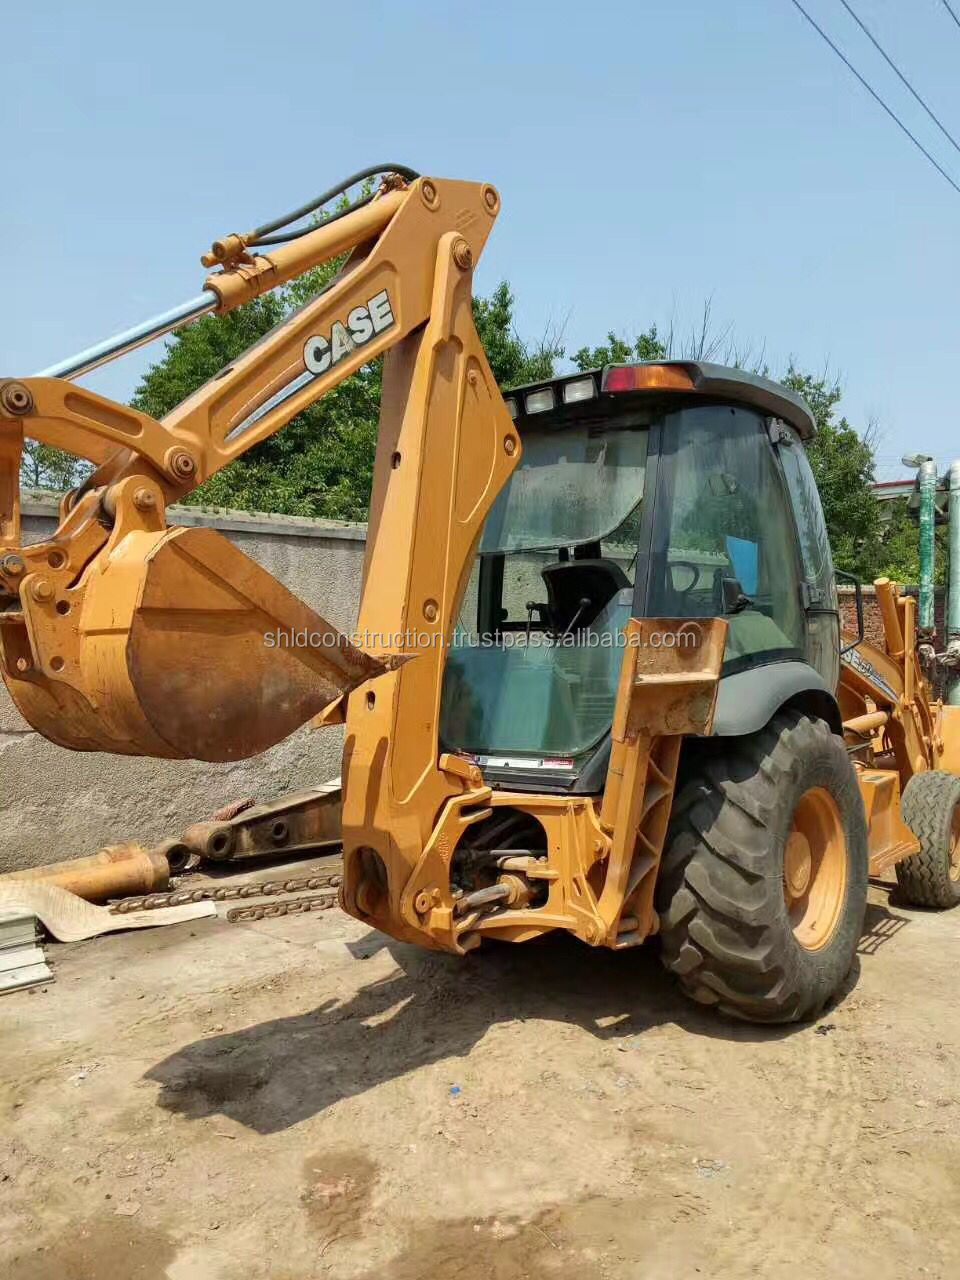 hight resolution of used case 580l backhoe loader case 590 backhoe loader case 580m case 580